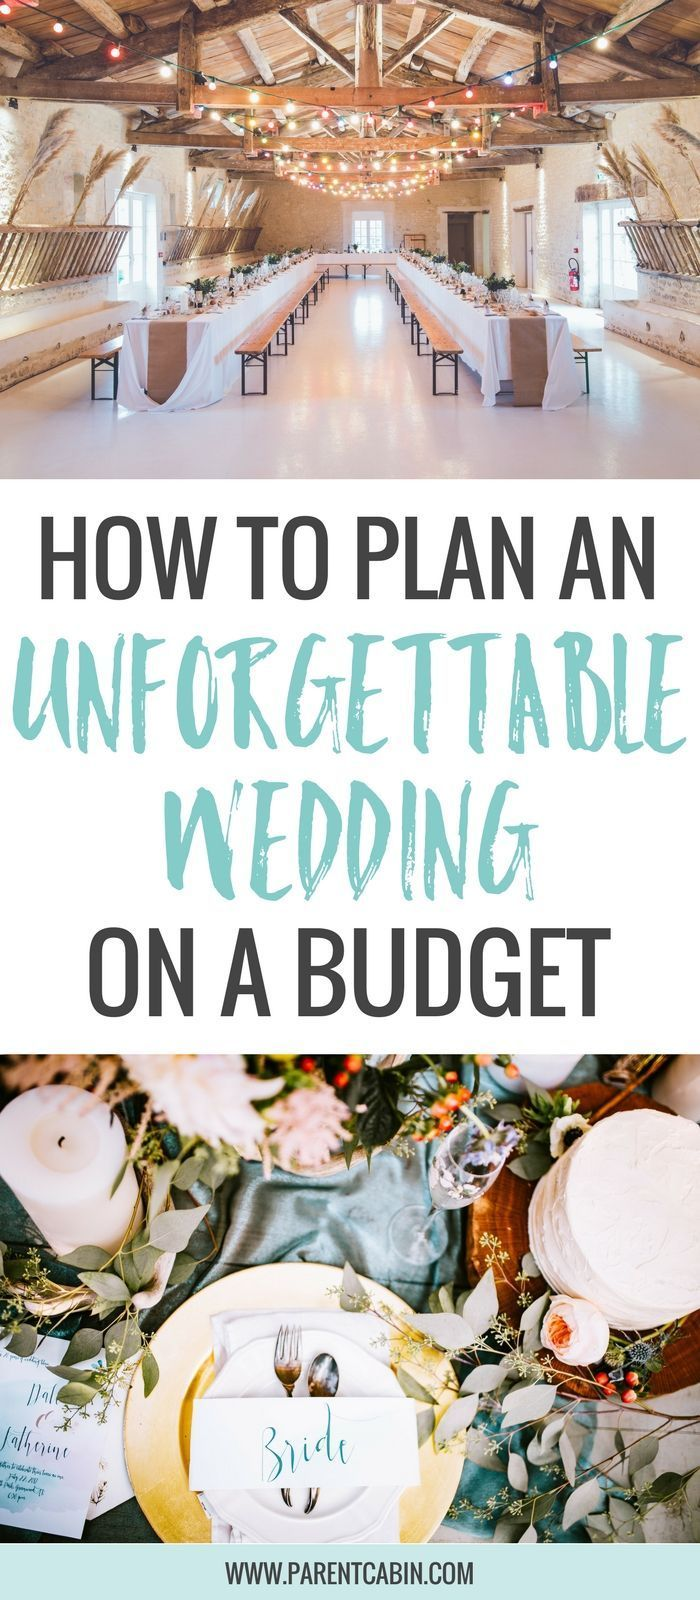 105 Best Weddings On A Budget Images On Pinterest Budget Wedding